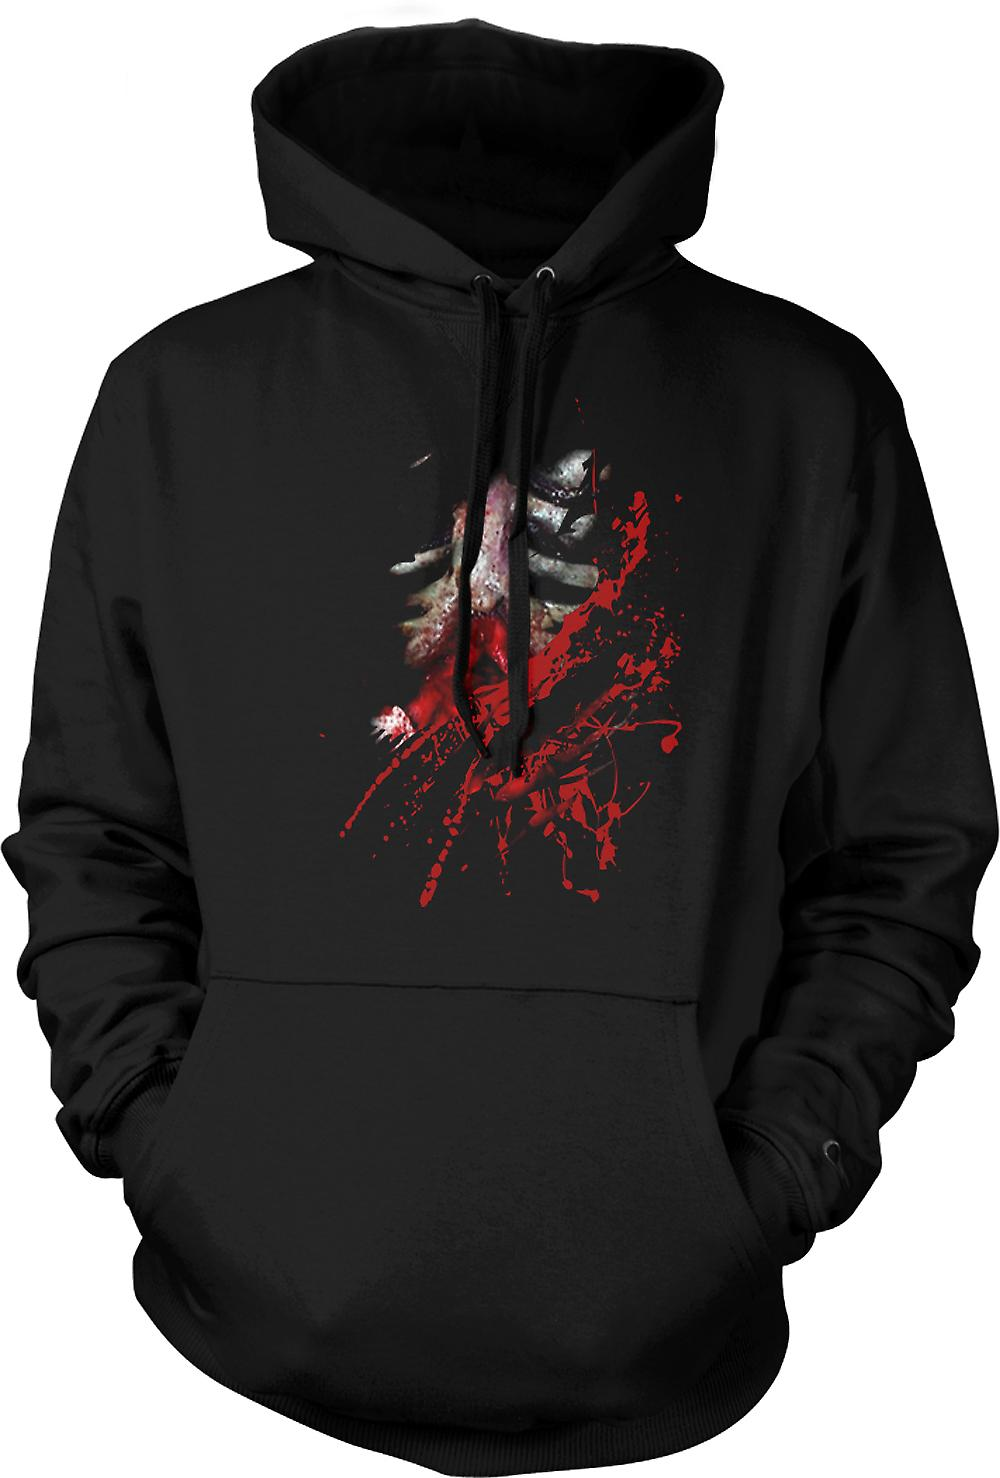 Mens Hoodie - Zombie Walking Dead Ribs And Guts Ripped Design